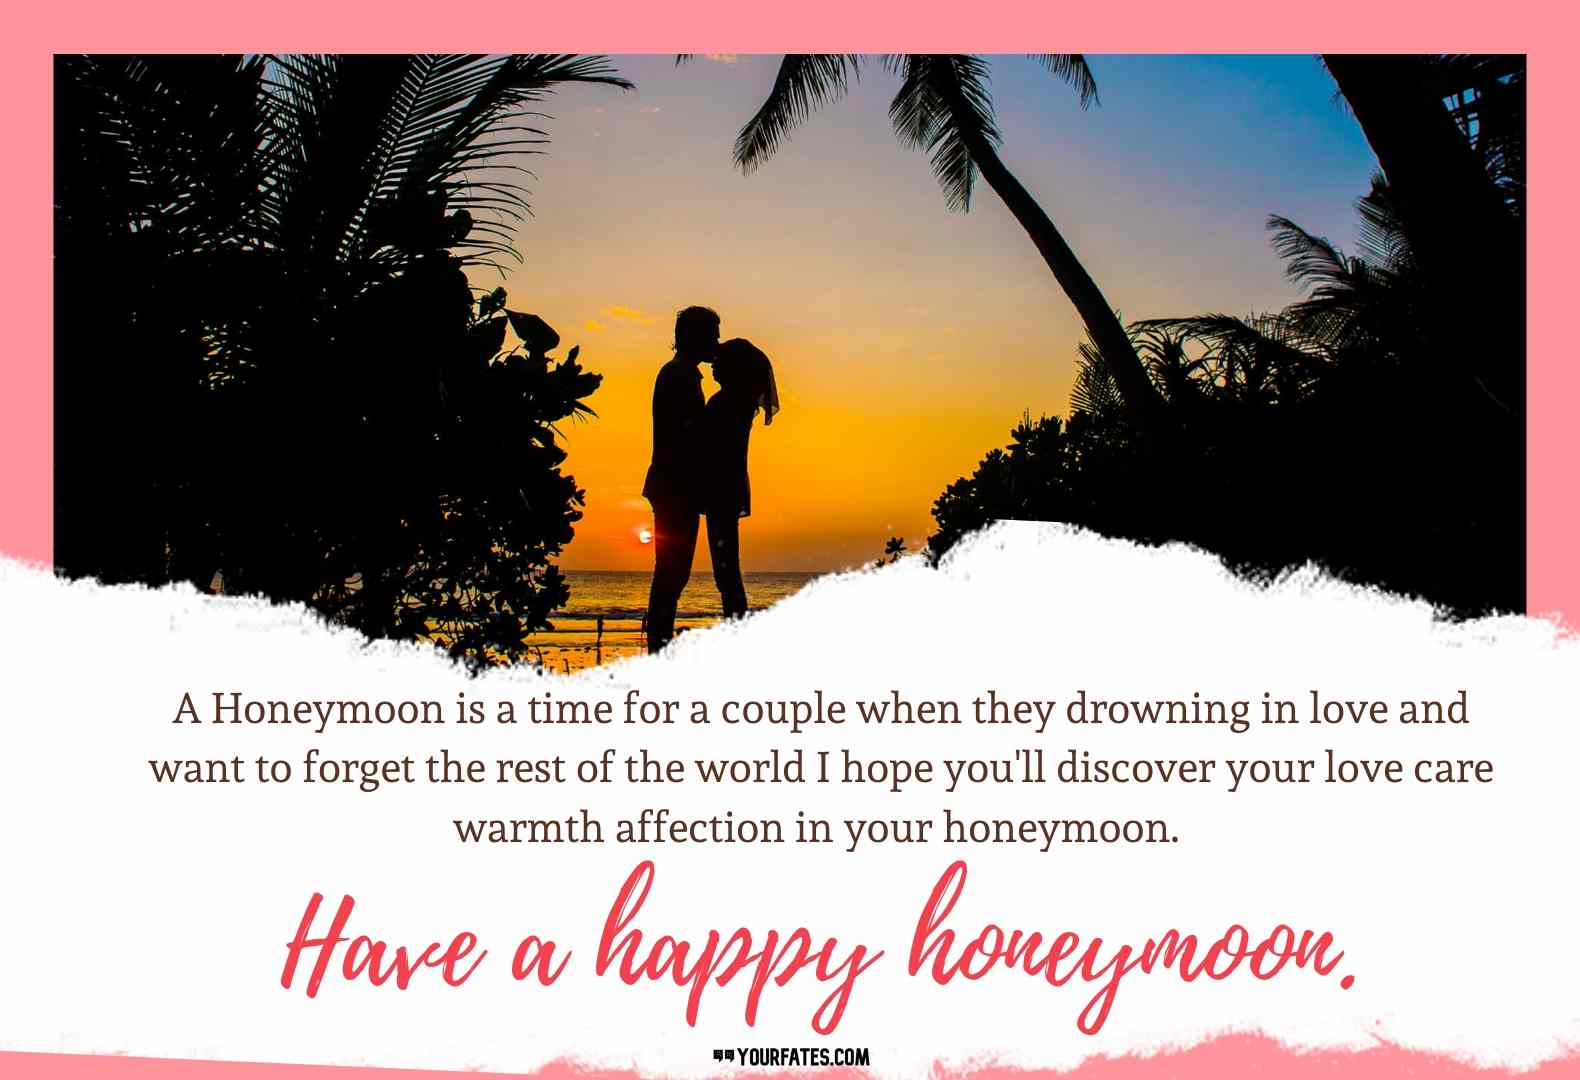 A Honeymoon is a time for a couple when they drowning in love and want to forget the rest of the world I hope you'll discover your love care warmth affection in your honeymoon. Have a happy honeymoon.